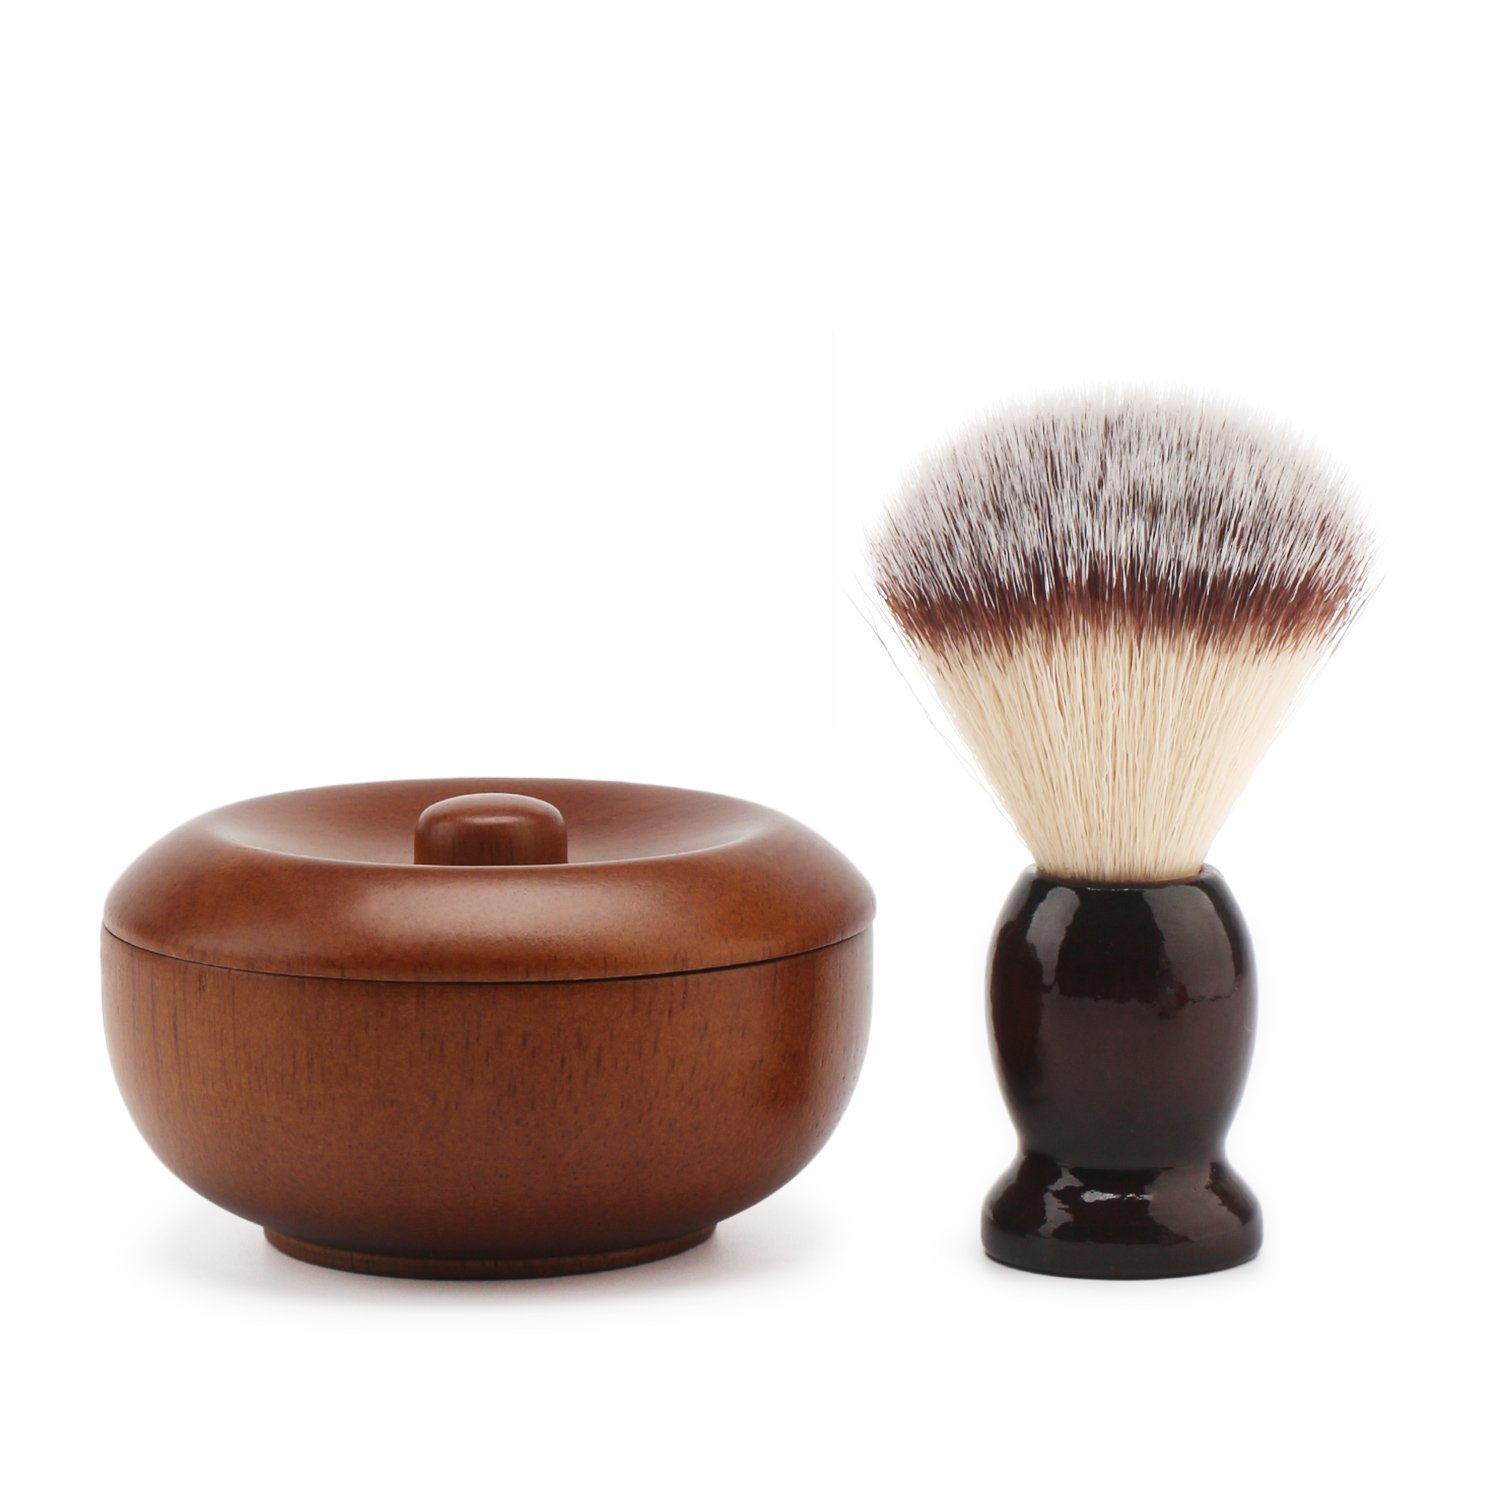 Soft Shave Lather Brush, Wooden Vintage Shave Mug with Lid, Beard Shaving Soap Cream Bowl Container for Men, Traditional Wet Shaving Kit